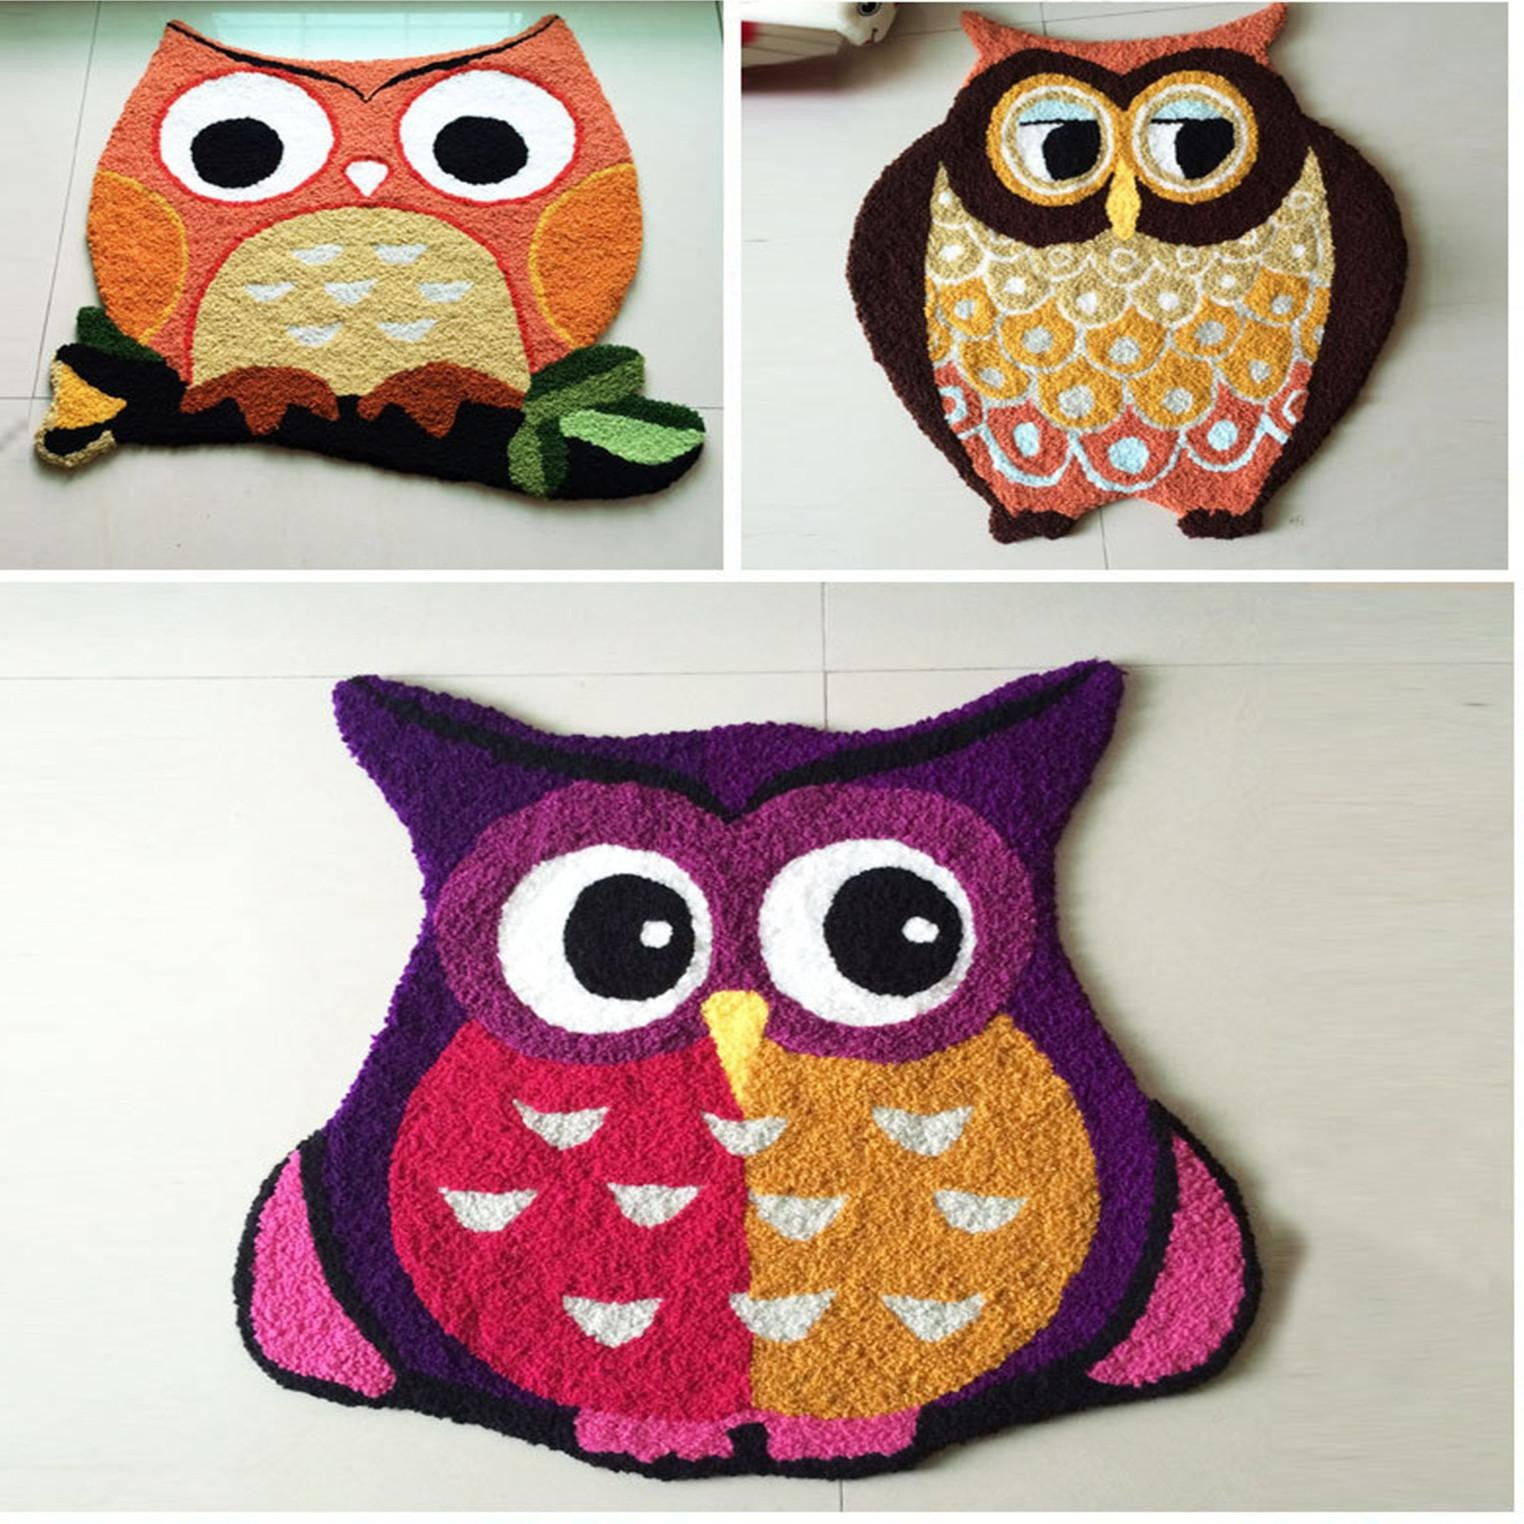 Handmade Owl Floor Mat Carpet